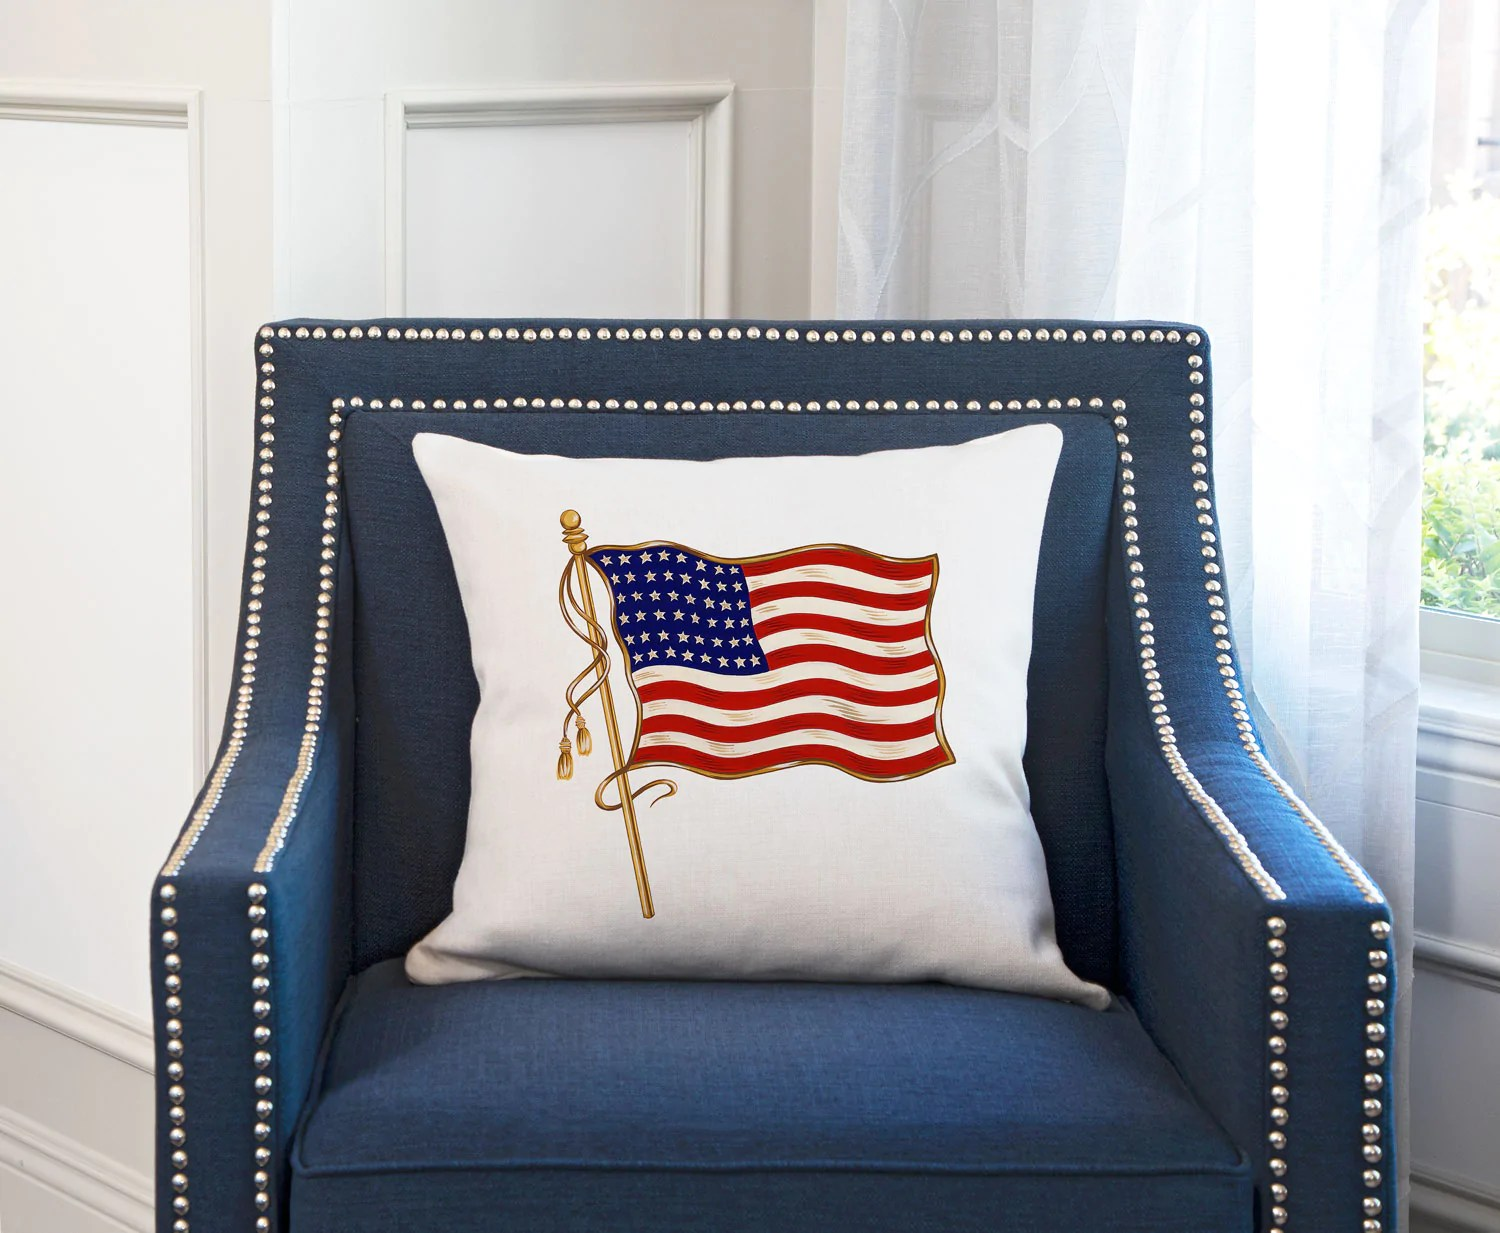 vintage american flag 48 stars pillow cover decorative designs throw pillow cover collection